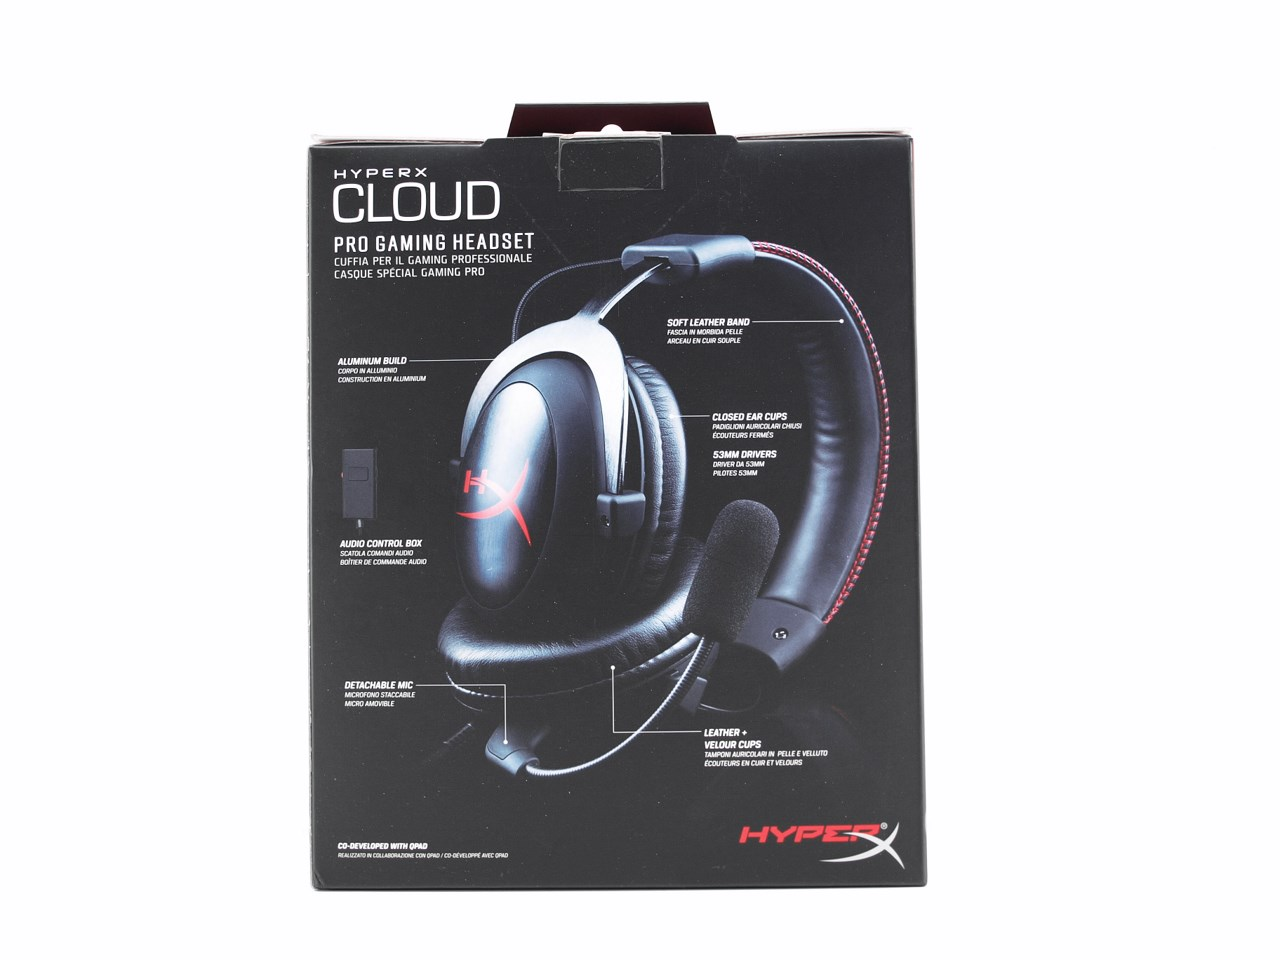 Kingston hyperx cloud ii gaming headset word cloud - Hyperx Cloud Headset 03t On The Opposite Side We See A Few Words About The Hyperx Line Of Products In 3 Languages